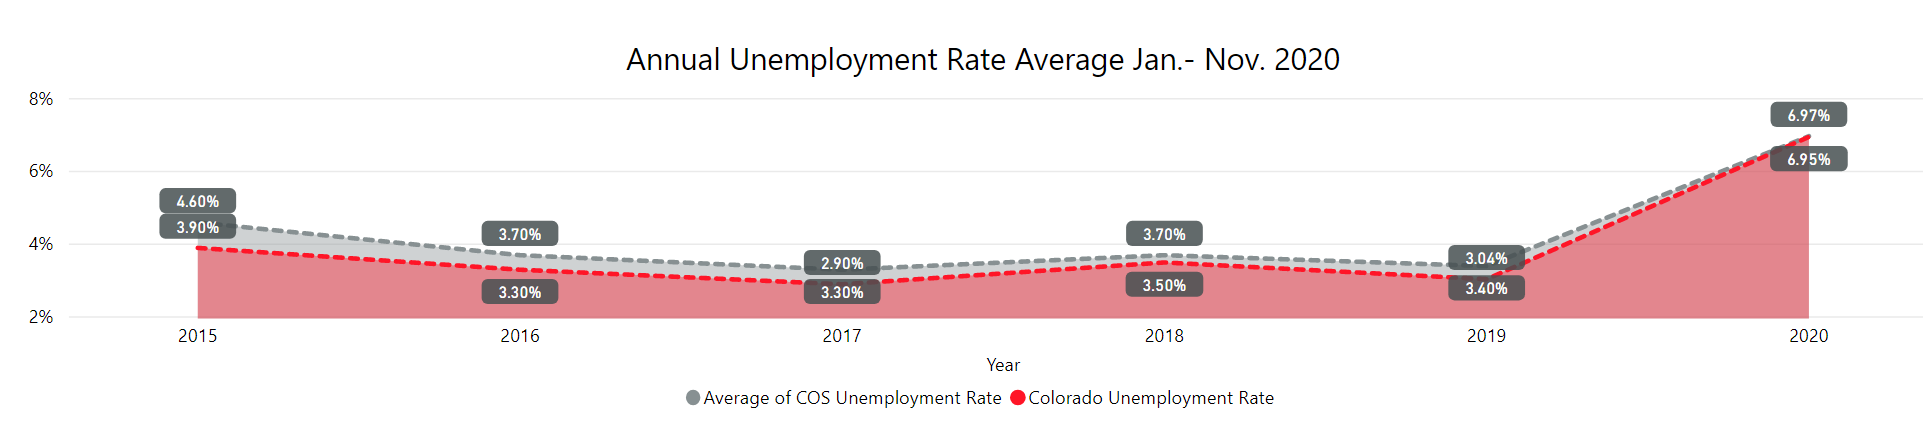 annual unemployment rate from 2015 to 2020. The rate dropped from 2015 to 2016 and remained low through 2019. The rate increased in 2020.